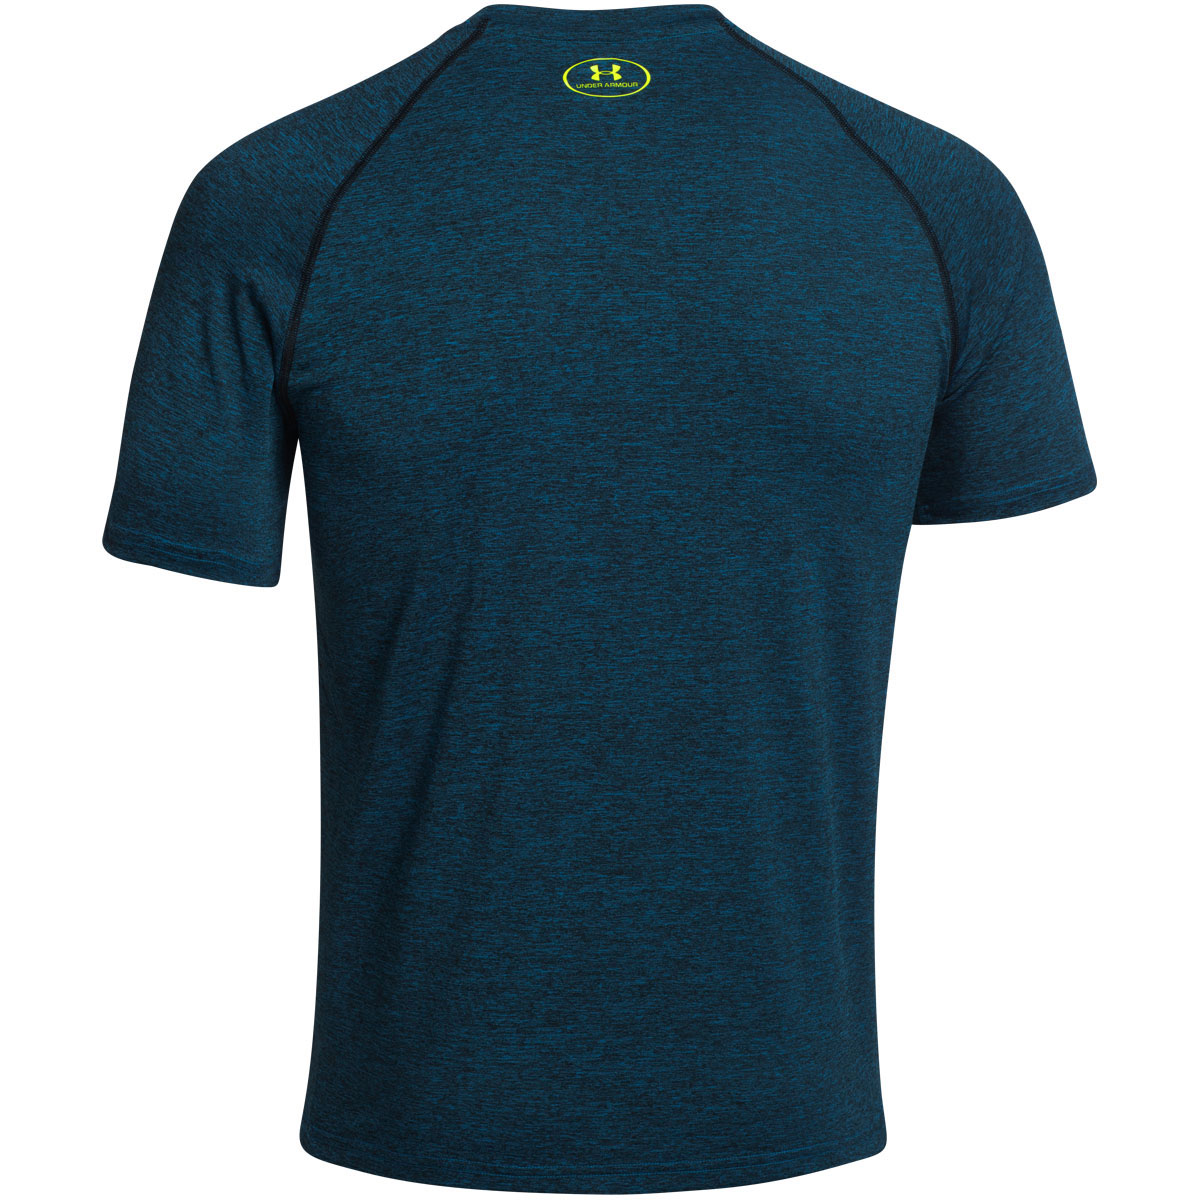 Under-Armour-Mens-UA-Tech-SS-T-Shirt-HeatGear-Training-31-OFF-RRP thumbnail 24